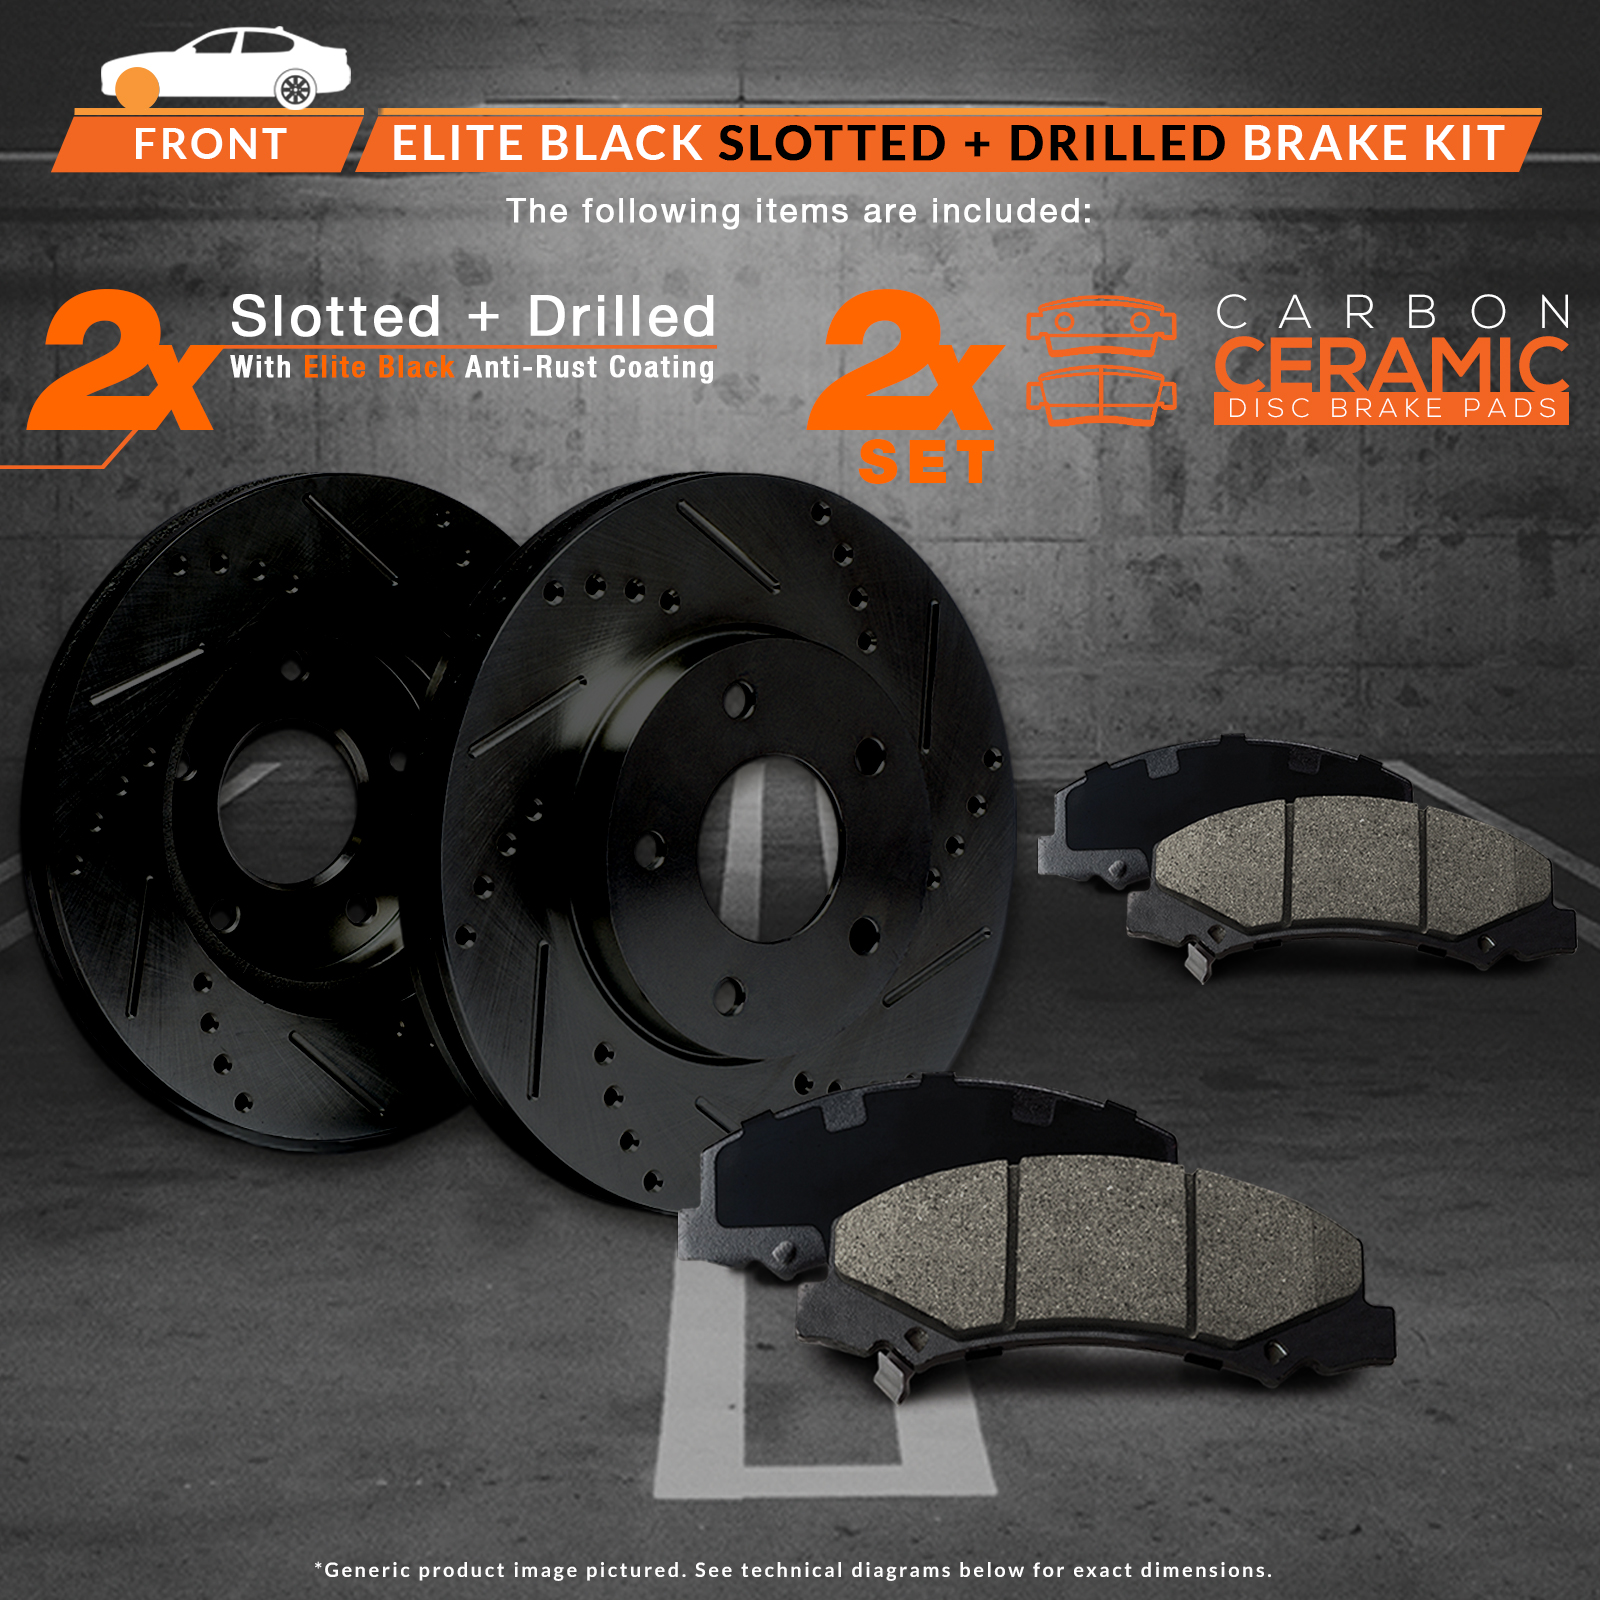 hight resolution of max brakes front elite brake kit e coated slotted drilled rotors ceramic pads kt002181 fits 1996 96 1997 97 1998 98 1999 99 plymouth breeze